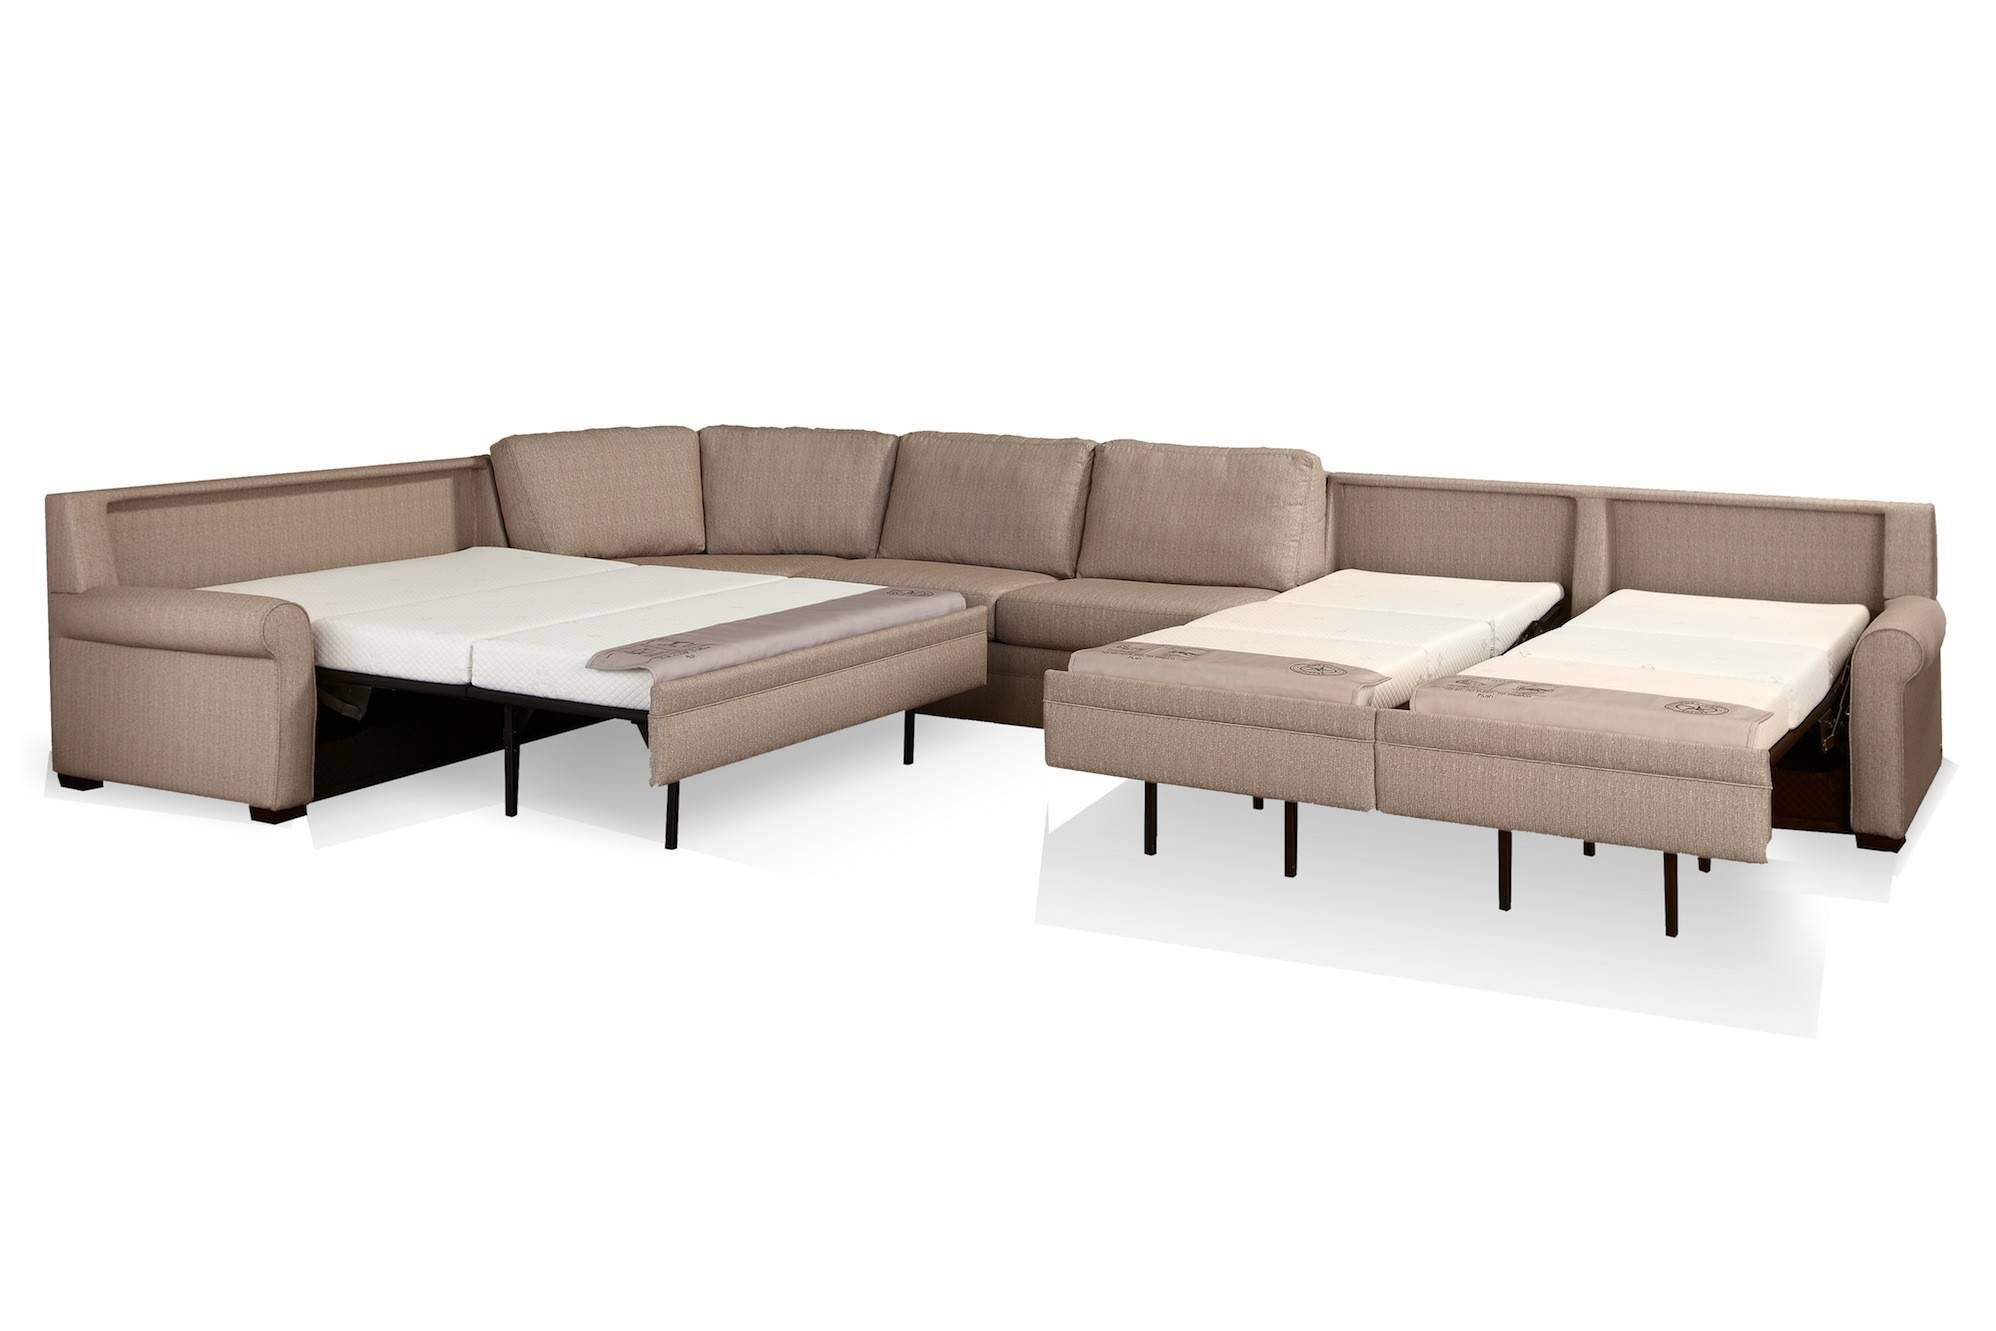 American Leather - Gina - Comfort Sleeper - 30 Day Custom Made regarding American Sofa Beds (Image 6 of 30)